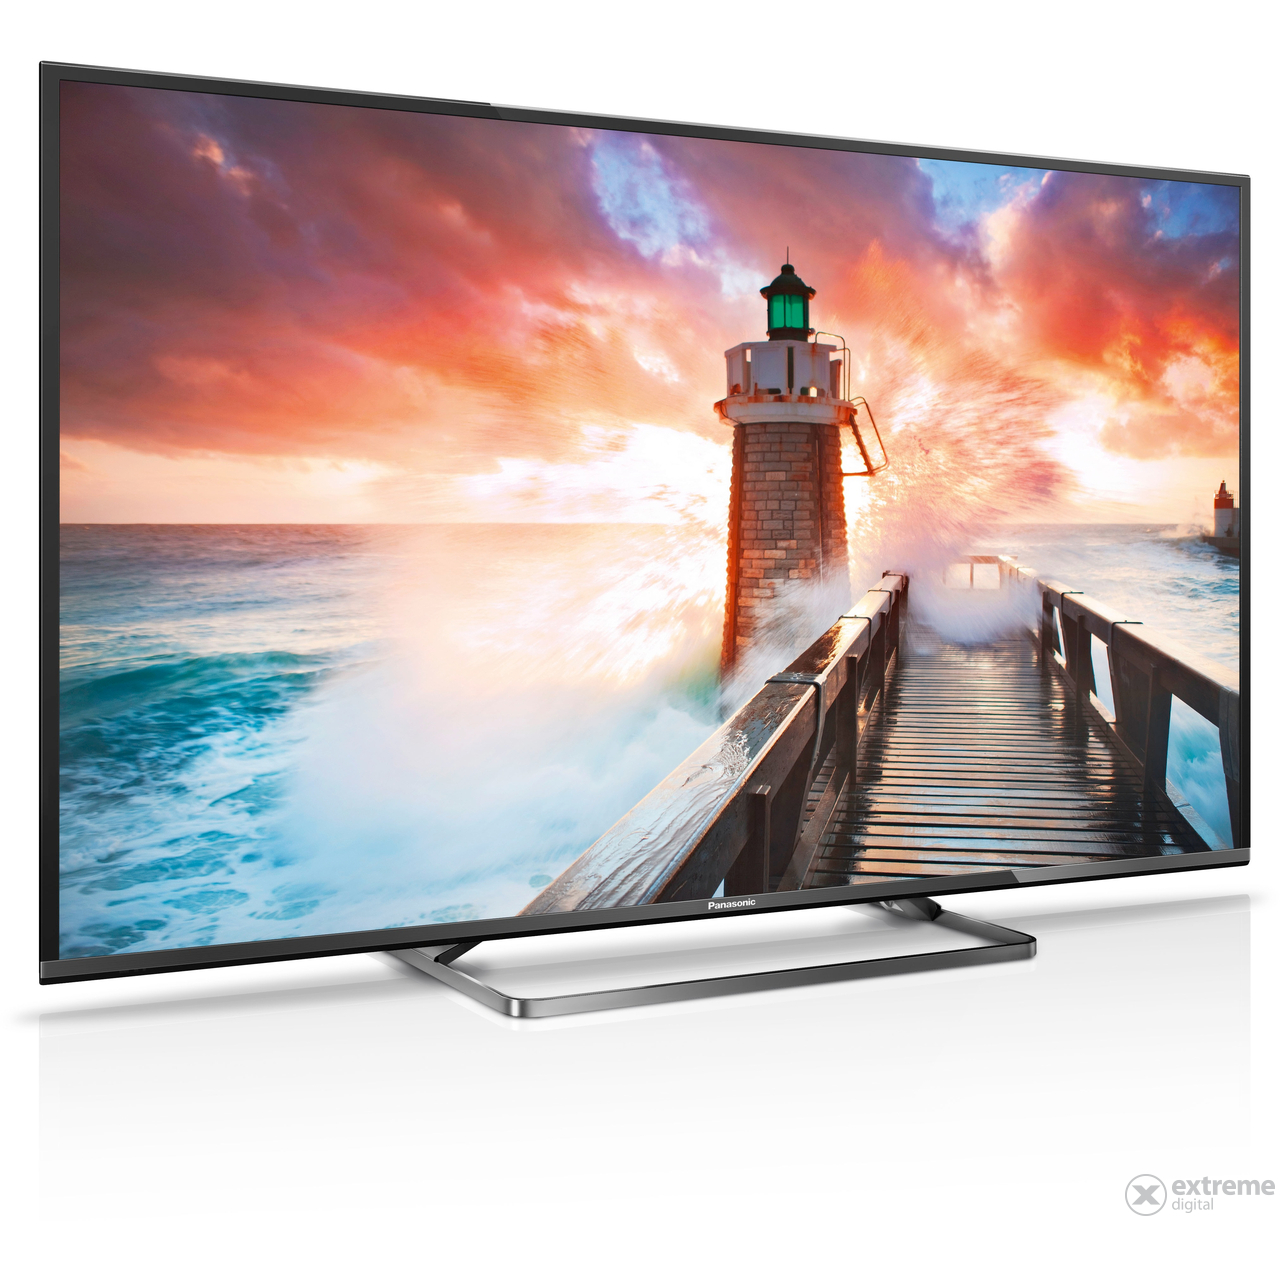 panasonic-tx-40cx680e-uhd-smart-led-televizio_4a170468.jpg